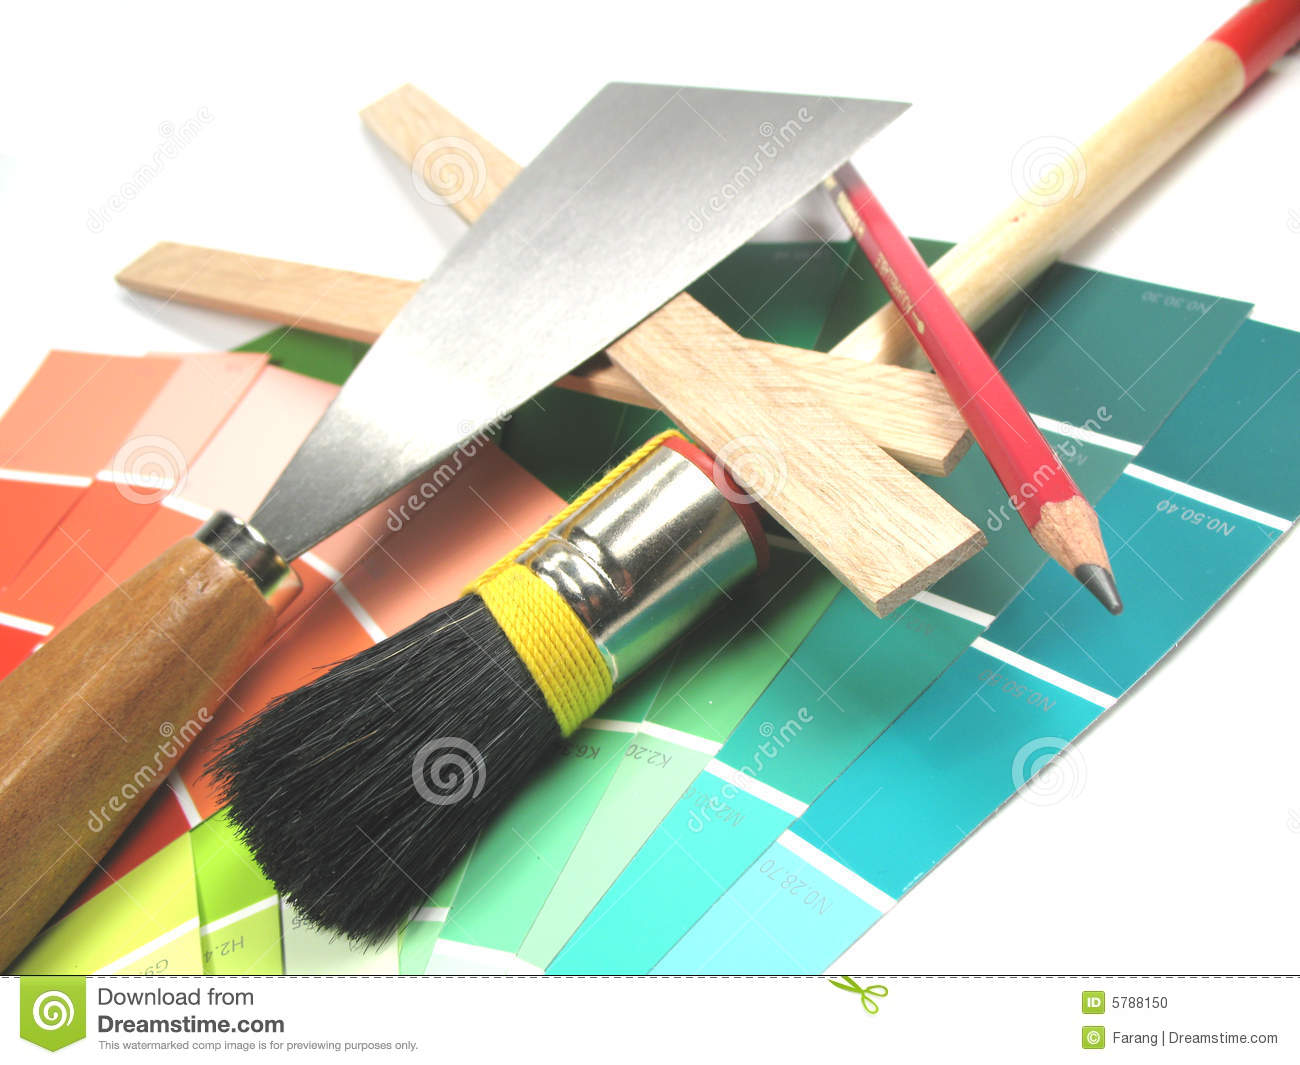 Tools for painting